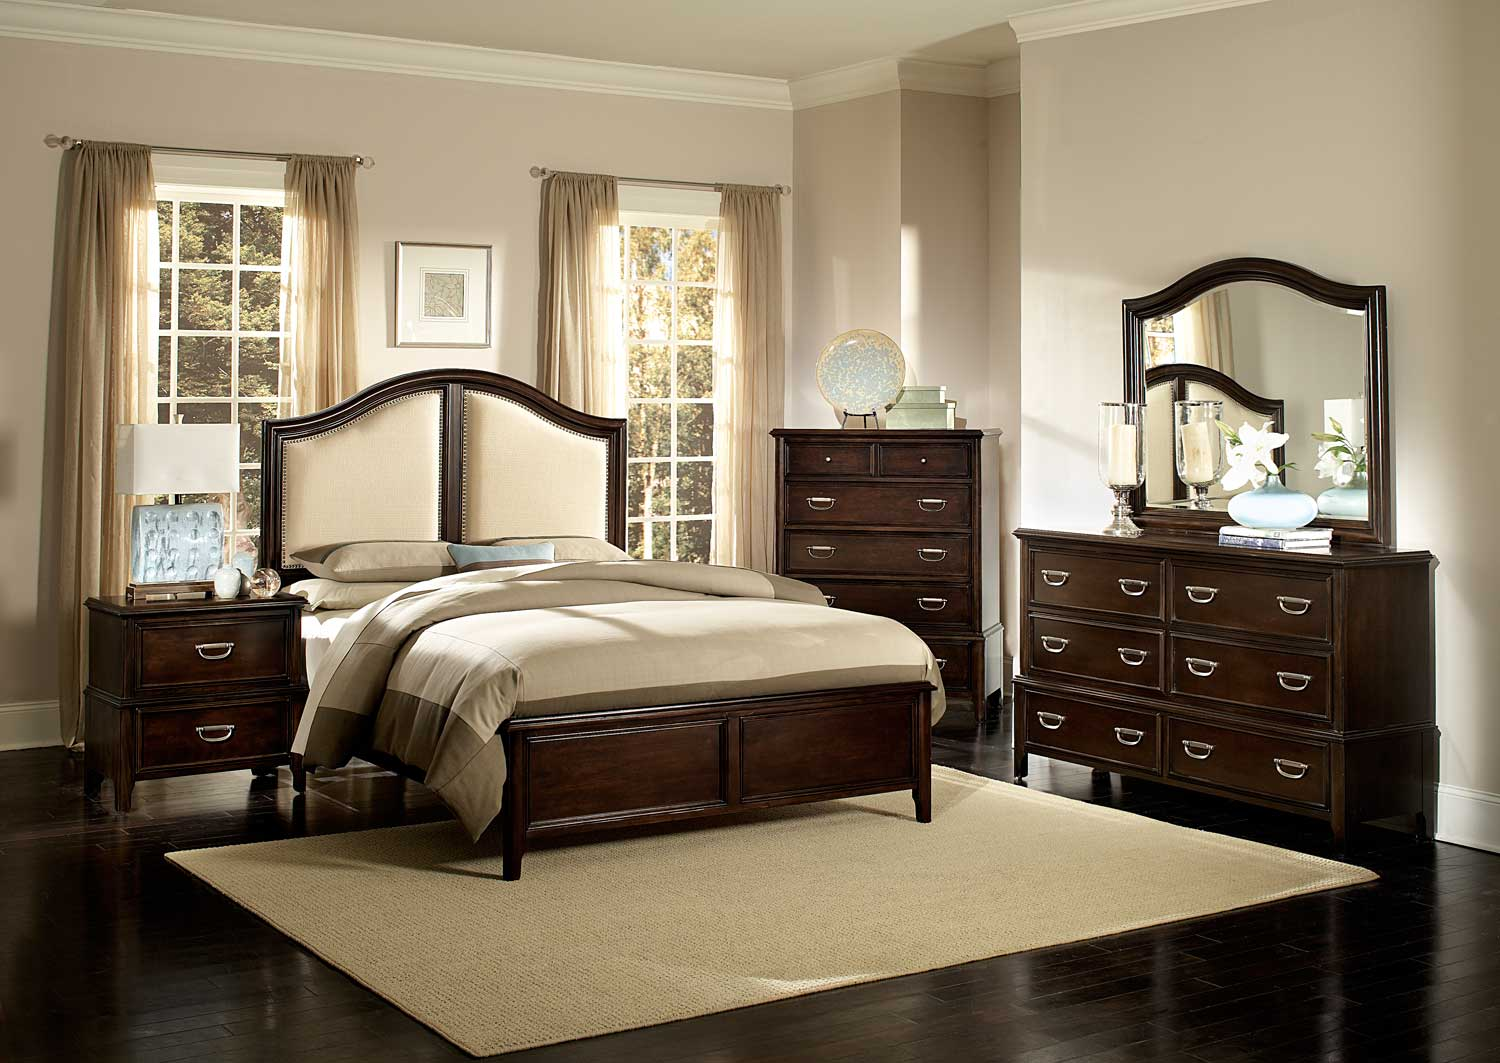 Homelegance Beaux Low Profile Bedroom Set with Linen Fabric Insert - Dark Cherry